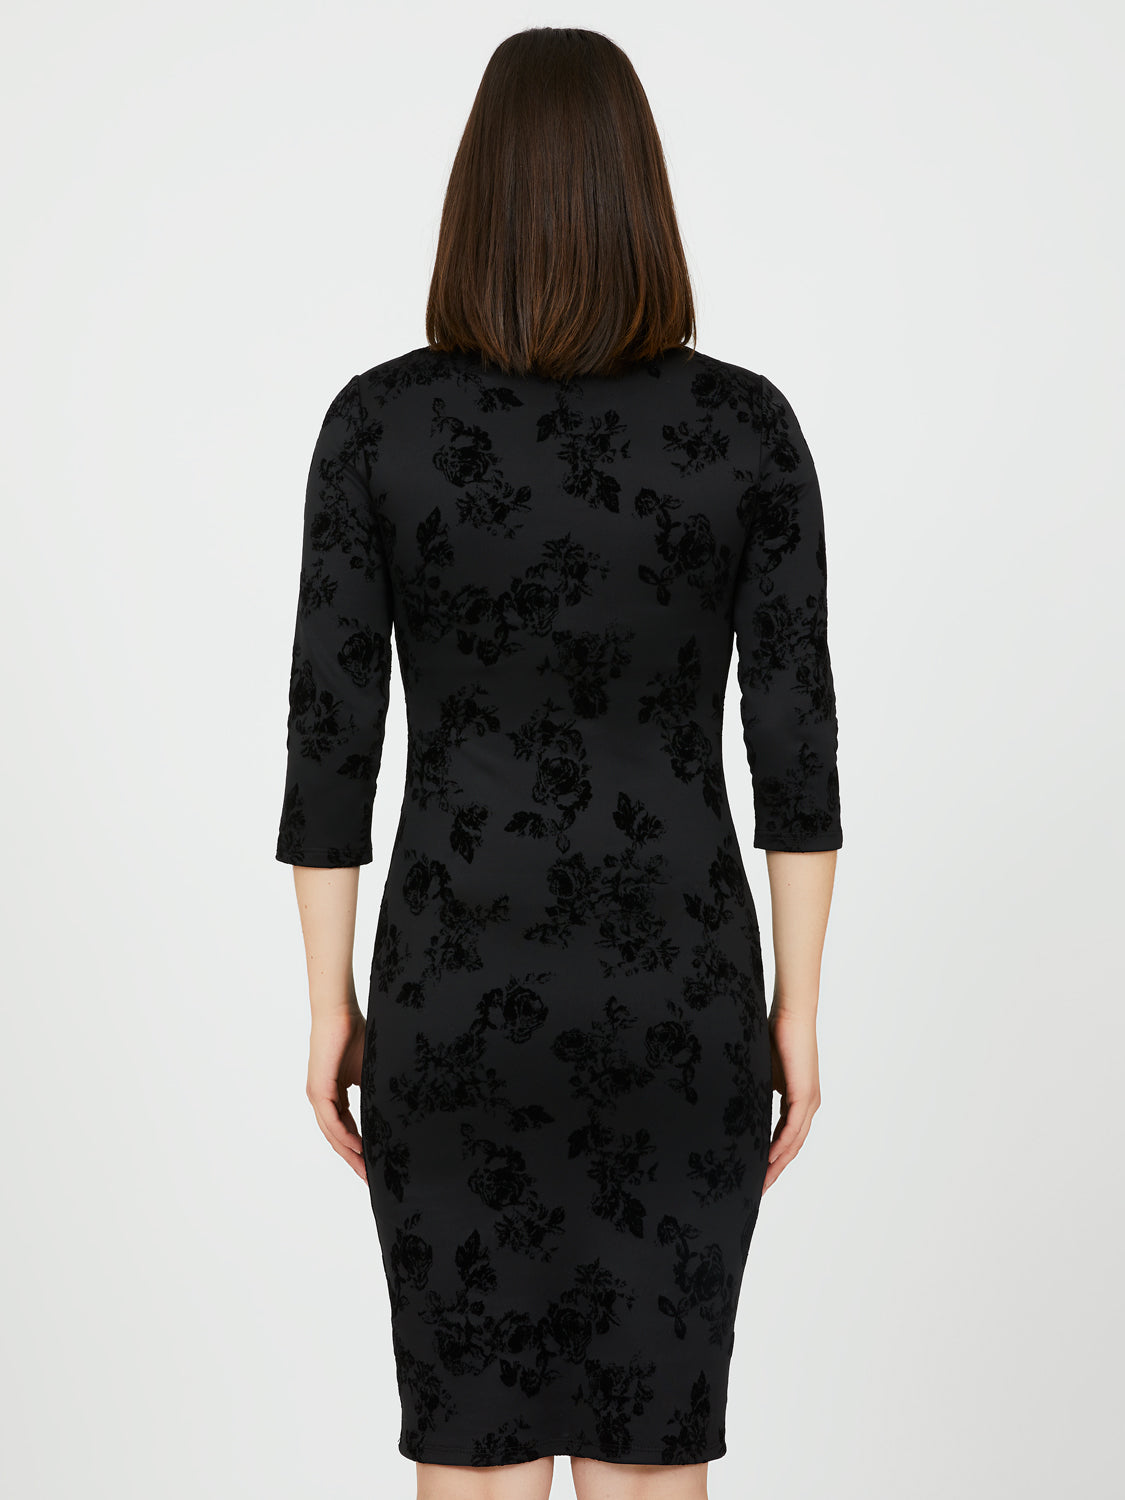 ¾ Sleeve Sheath Dress with Floral Flocking